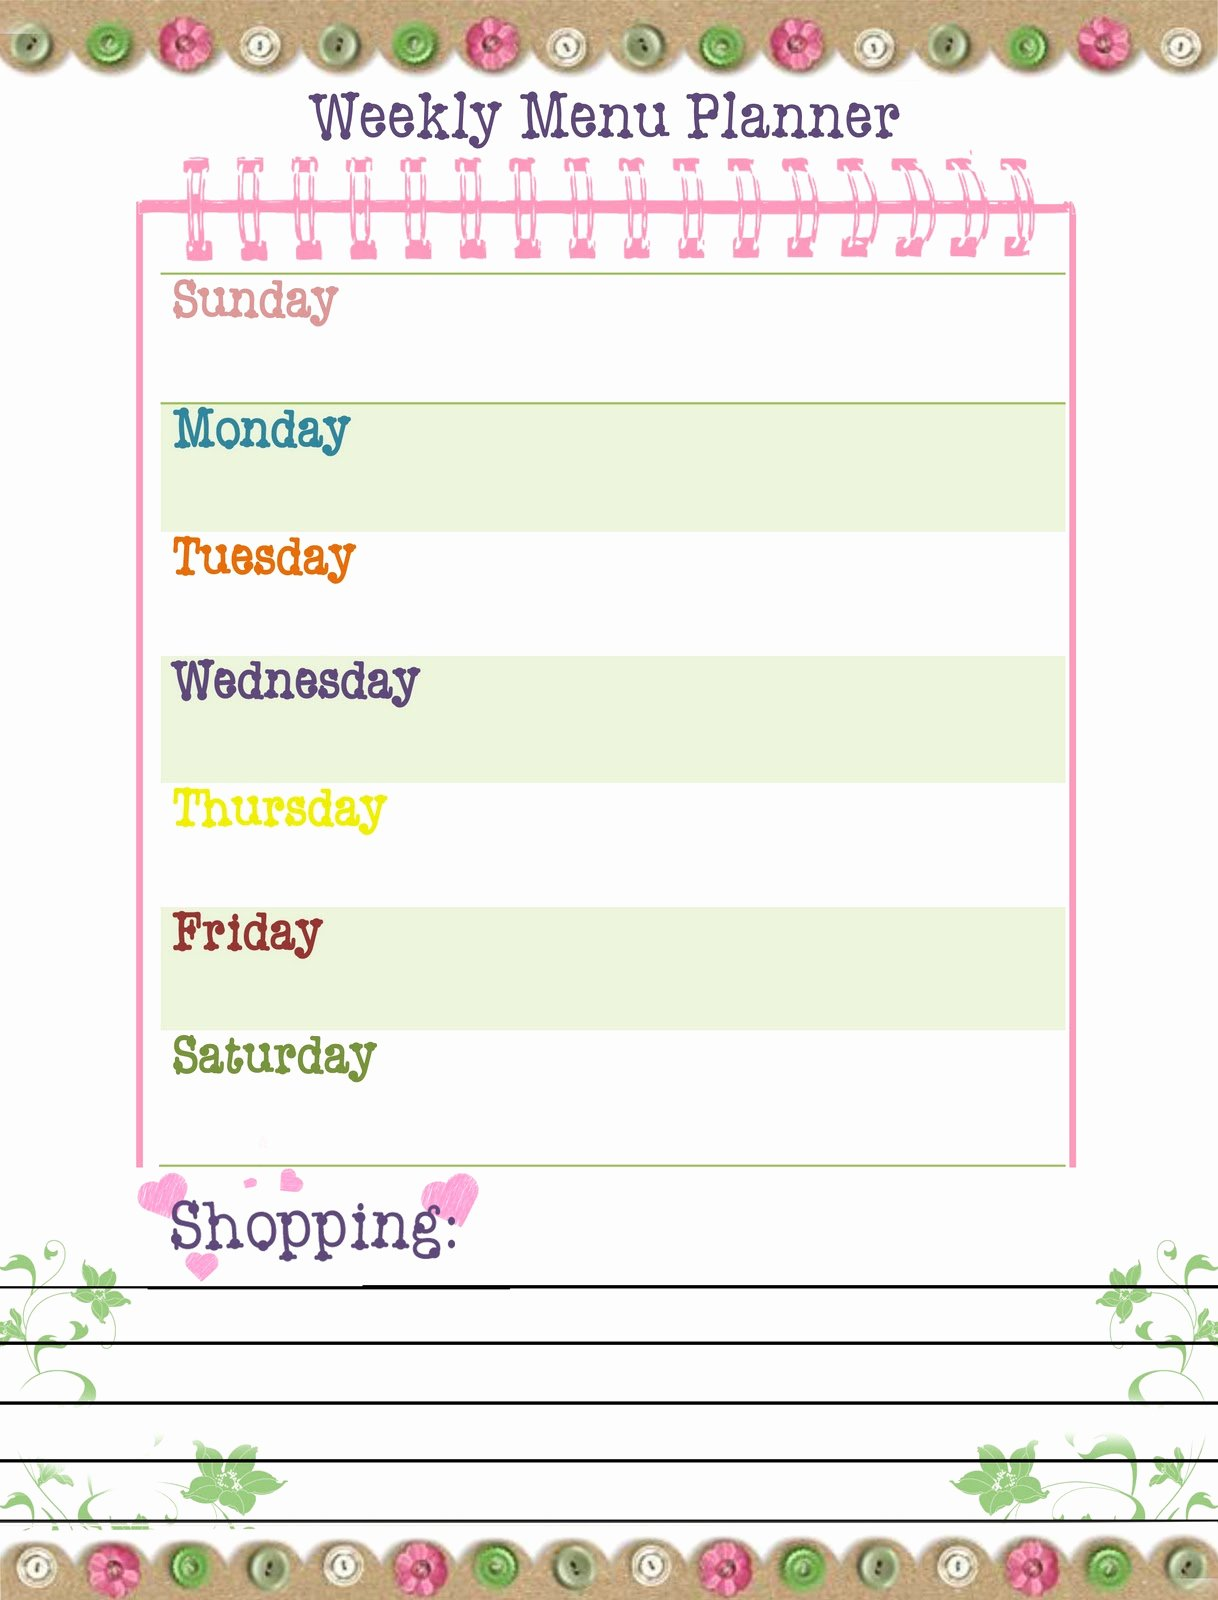 Menu Planner Template Free Inspirational Our Way to Learn Weekly Menu Planner Free Printable